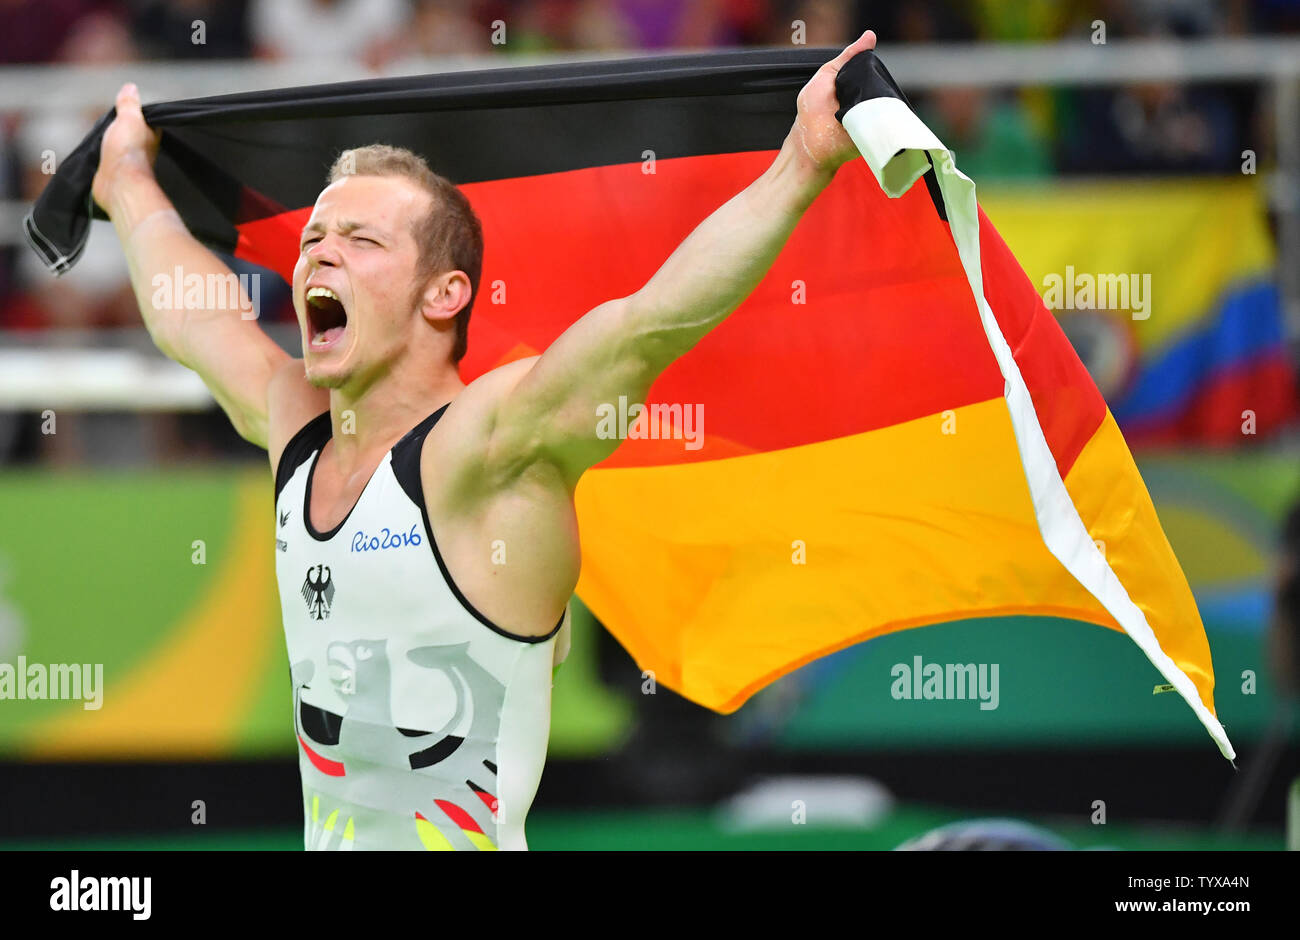 Fabian Hambuechen of Germany celebrates after competing and winning gold in the Horizontal Bar Final at the Olympic Arena of the 2016 Rio Summer Olympics in Rio de Janeiro, Brazil, August 16, 2016.          Photo by Kevin Dietsch/UPI - Stock Image